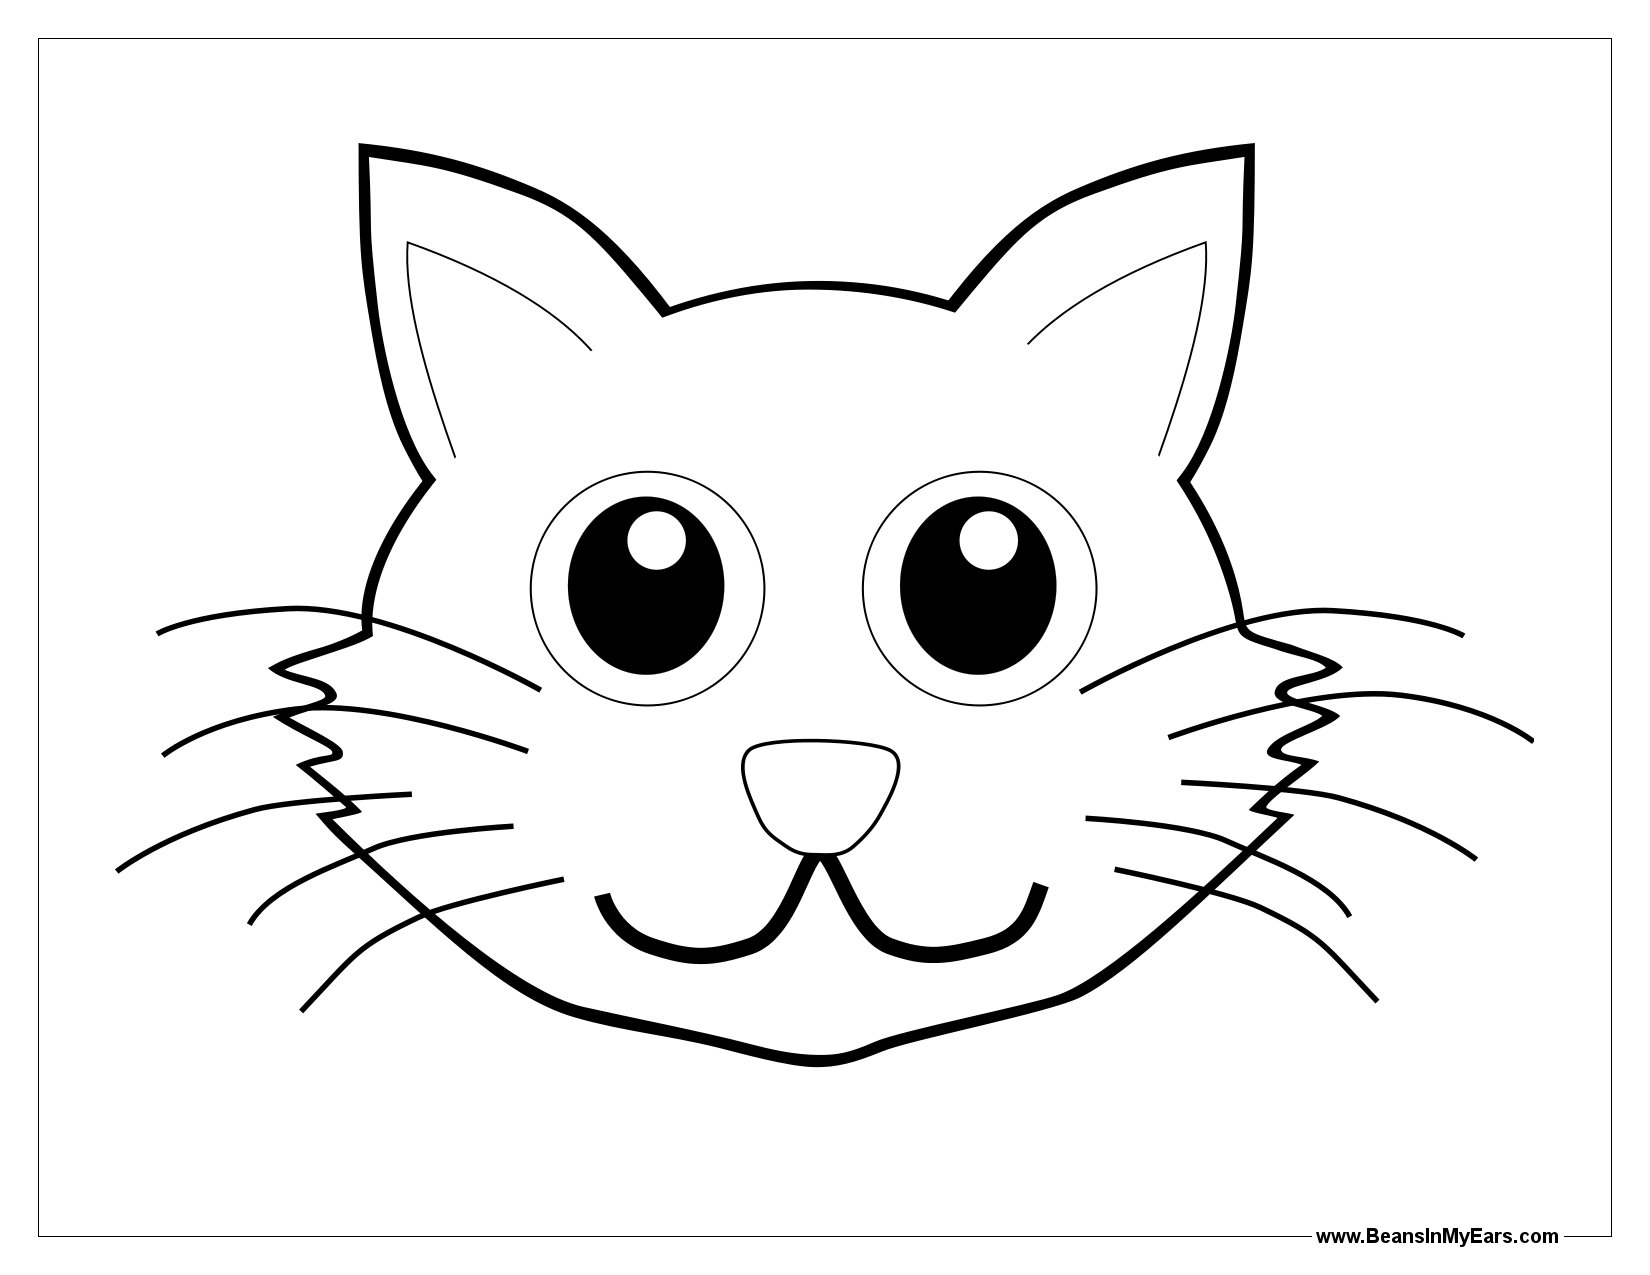 1650x1275 Cat In The Hat Coloring Pages Free